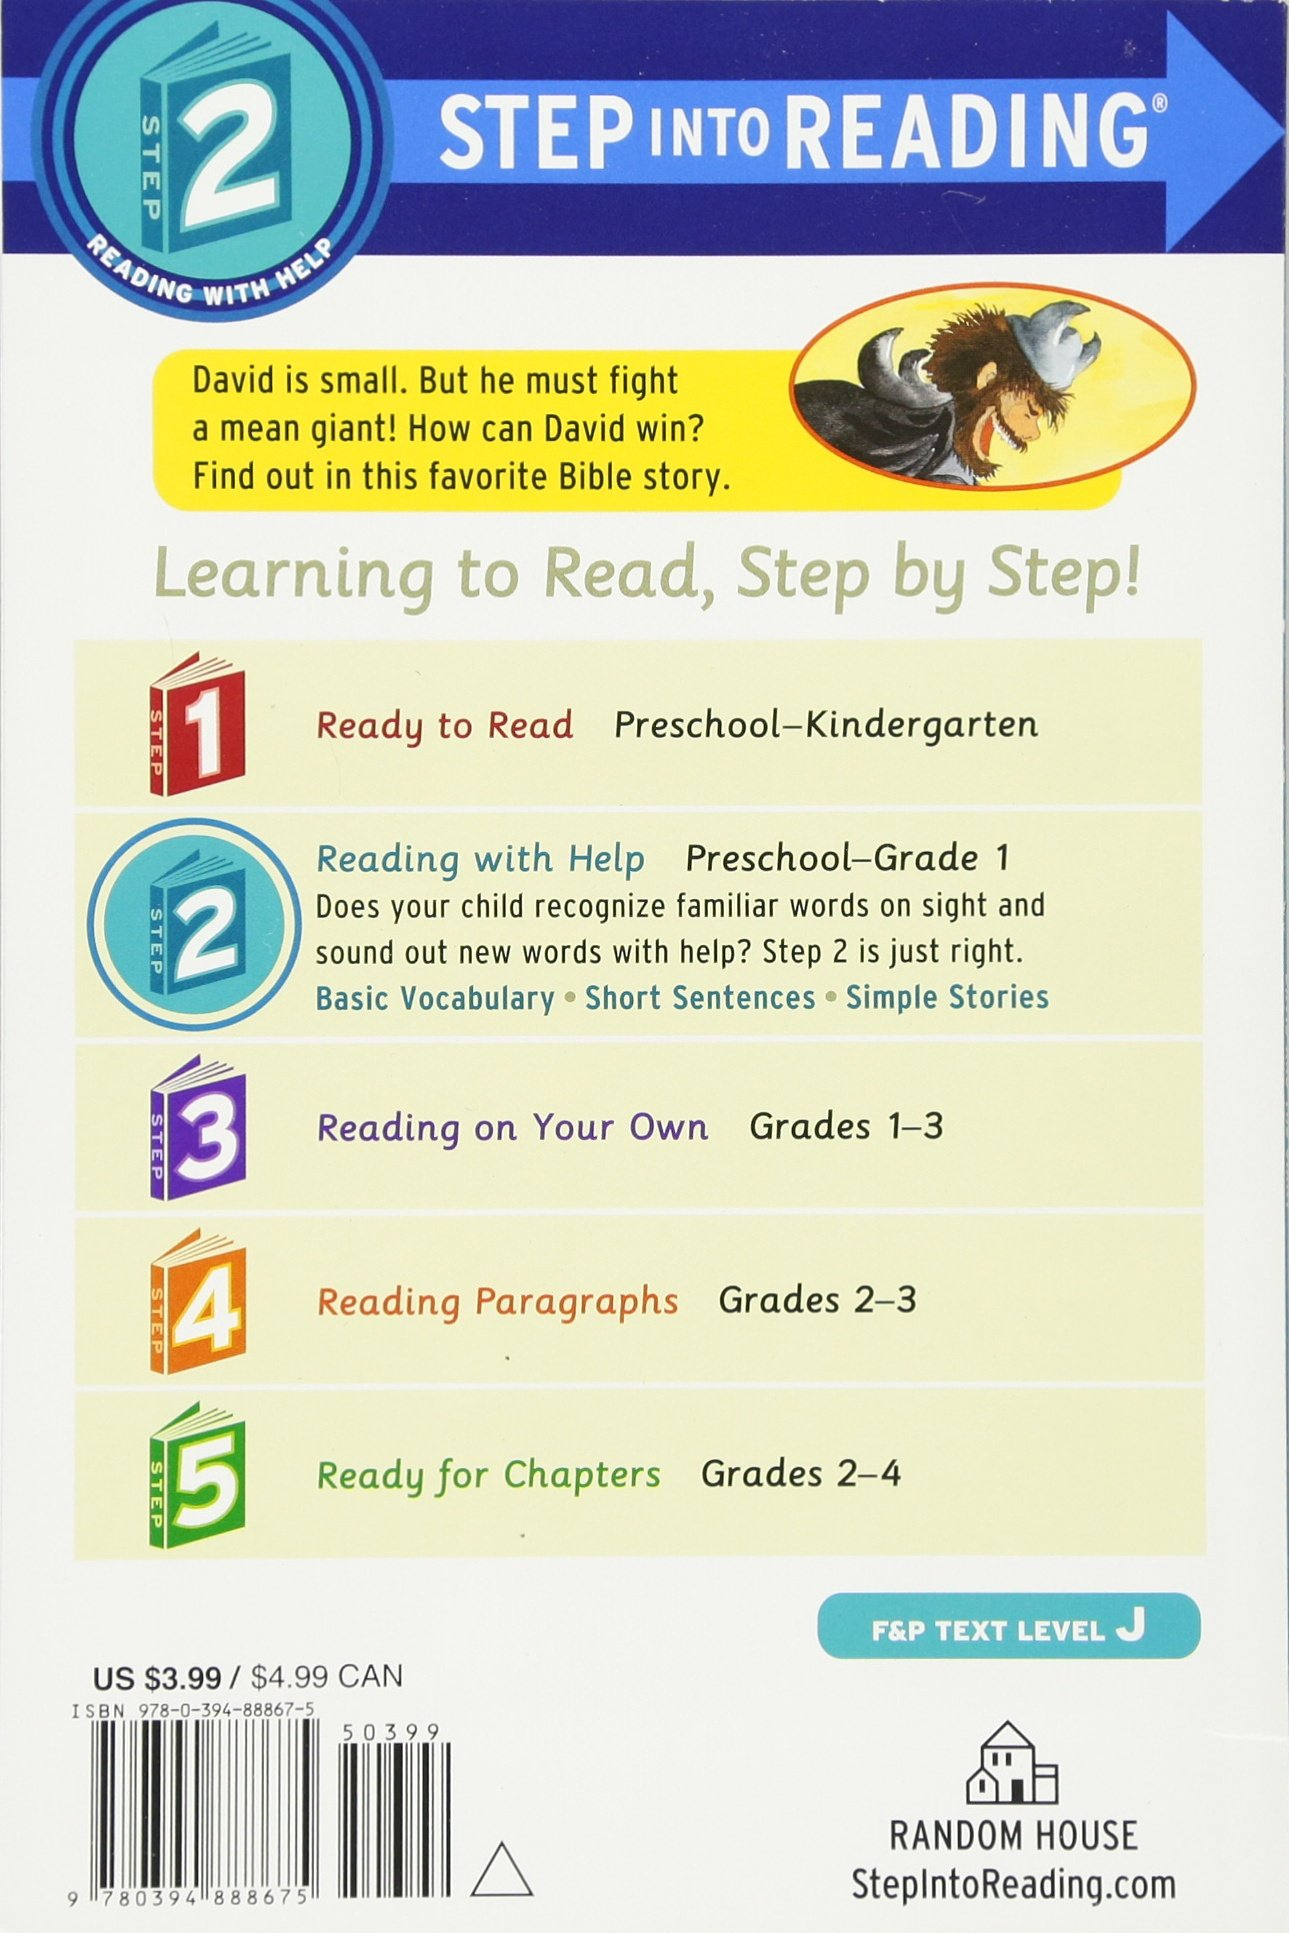 amazon com david and the giant step into reading step 2